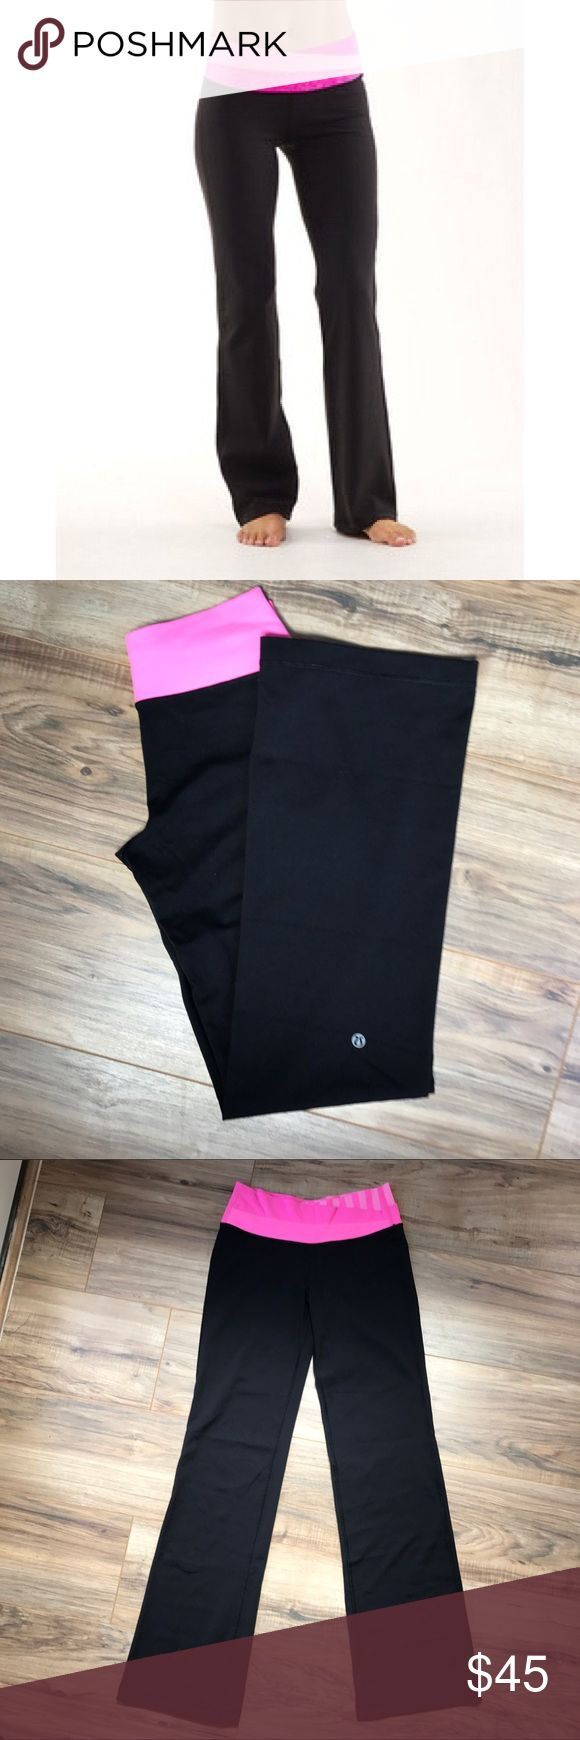 Lululemon Astro Pants Size 4 💗 Sorry I know the stock picture isn't exactly the same color/pattern waist band but it was the closest I could find. These pants do not fit me so I have no knowledge of the fit. There is a little pilling in the crotch area and back upper butt area and a little on the waist band as seen in the last pick. Other than that I don't see any obvious flaws. No fading, the black is dark and the pink is vivid. Beautiful pants. Please review pics closely. lululemon…